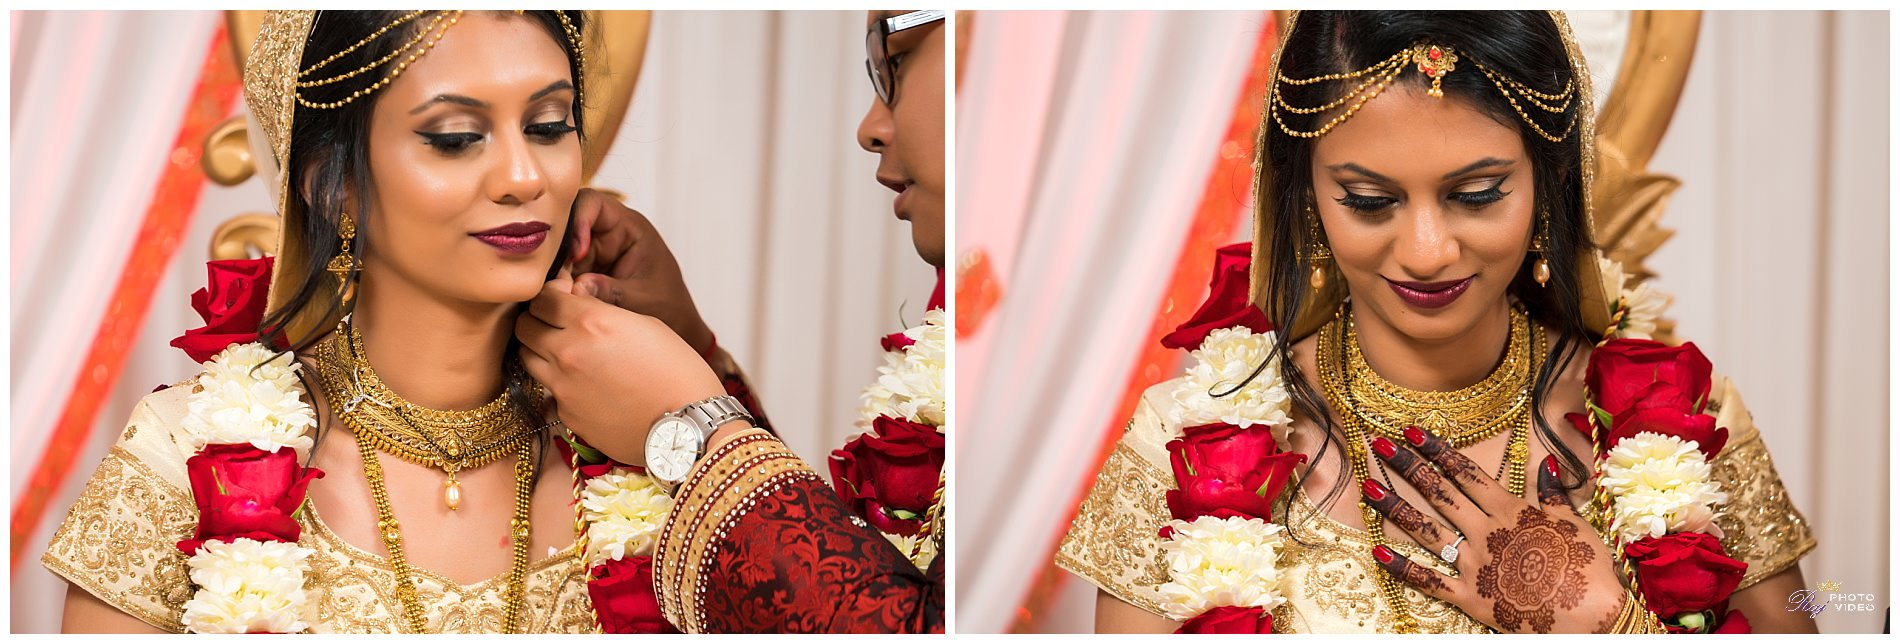 Aashirwad-Palace-Randolph-NJ-Hindu-Wedding-Ceremony-Khusbu-Jeff-23.jpg